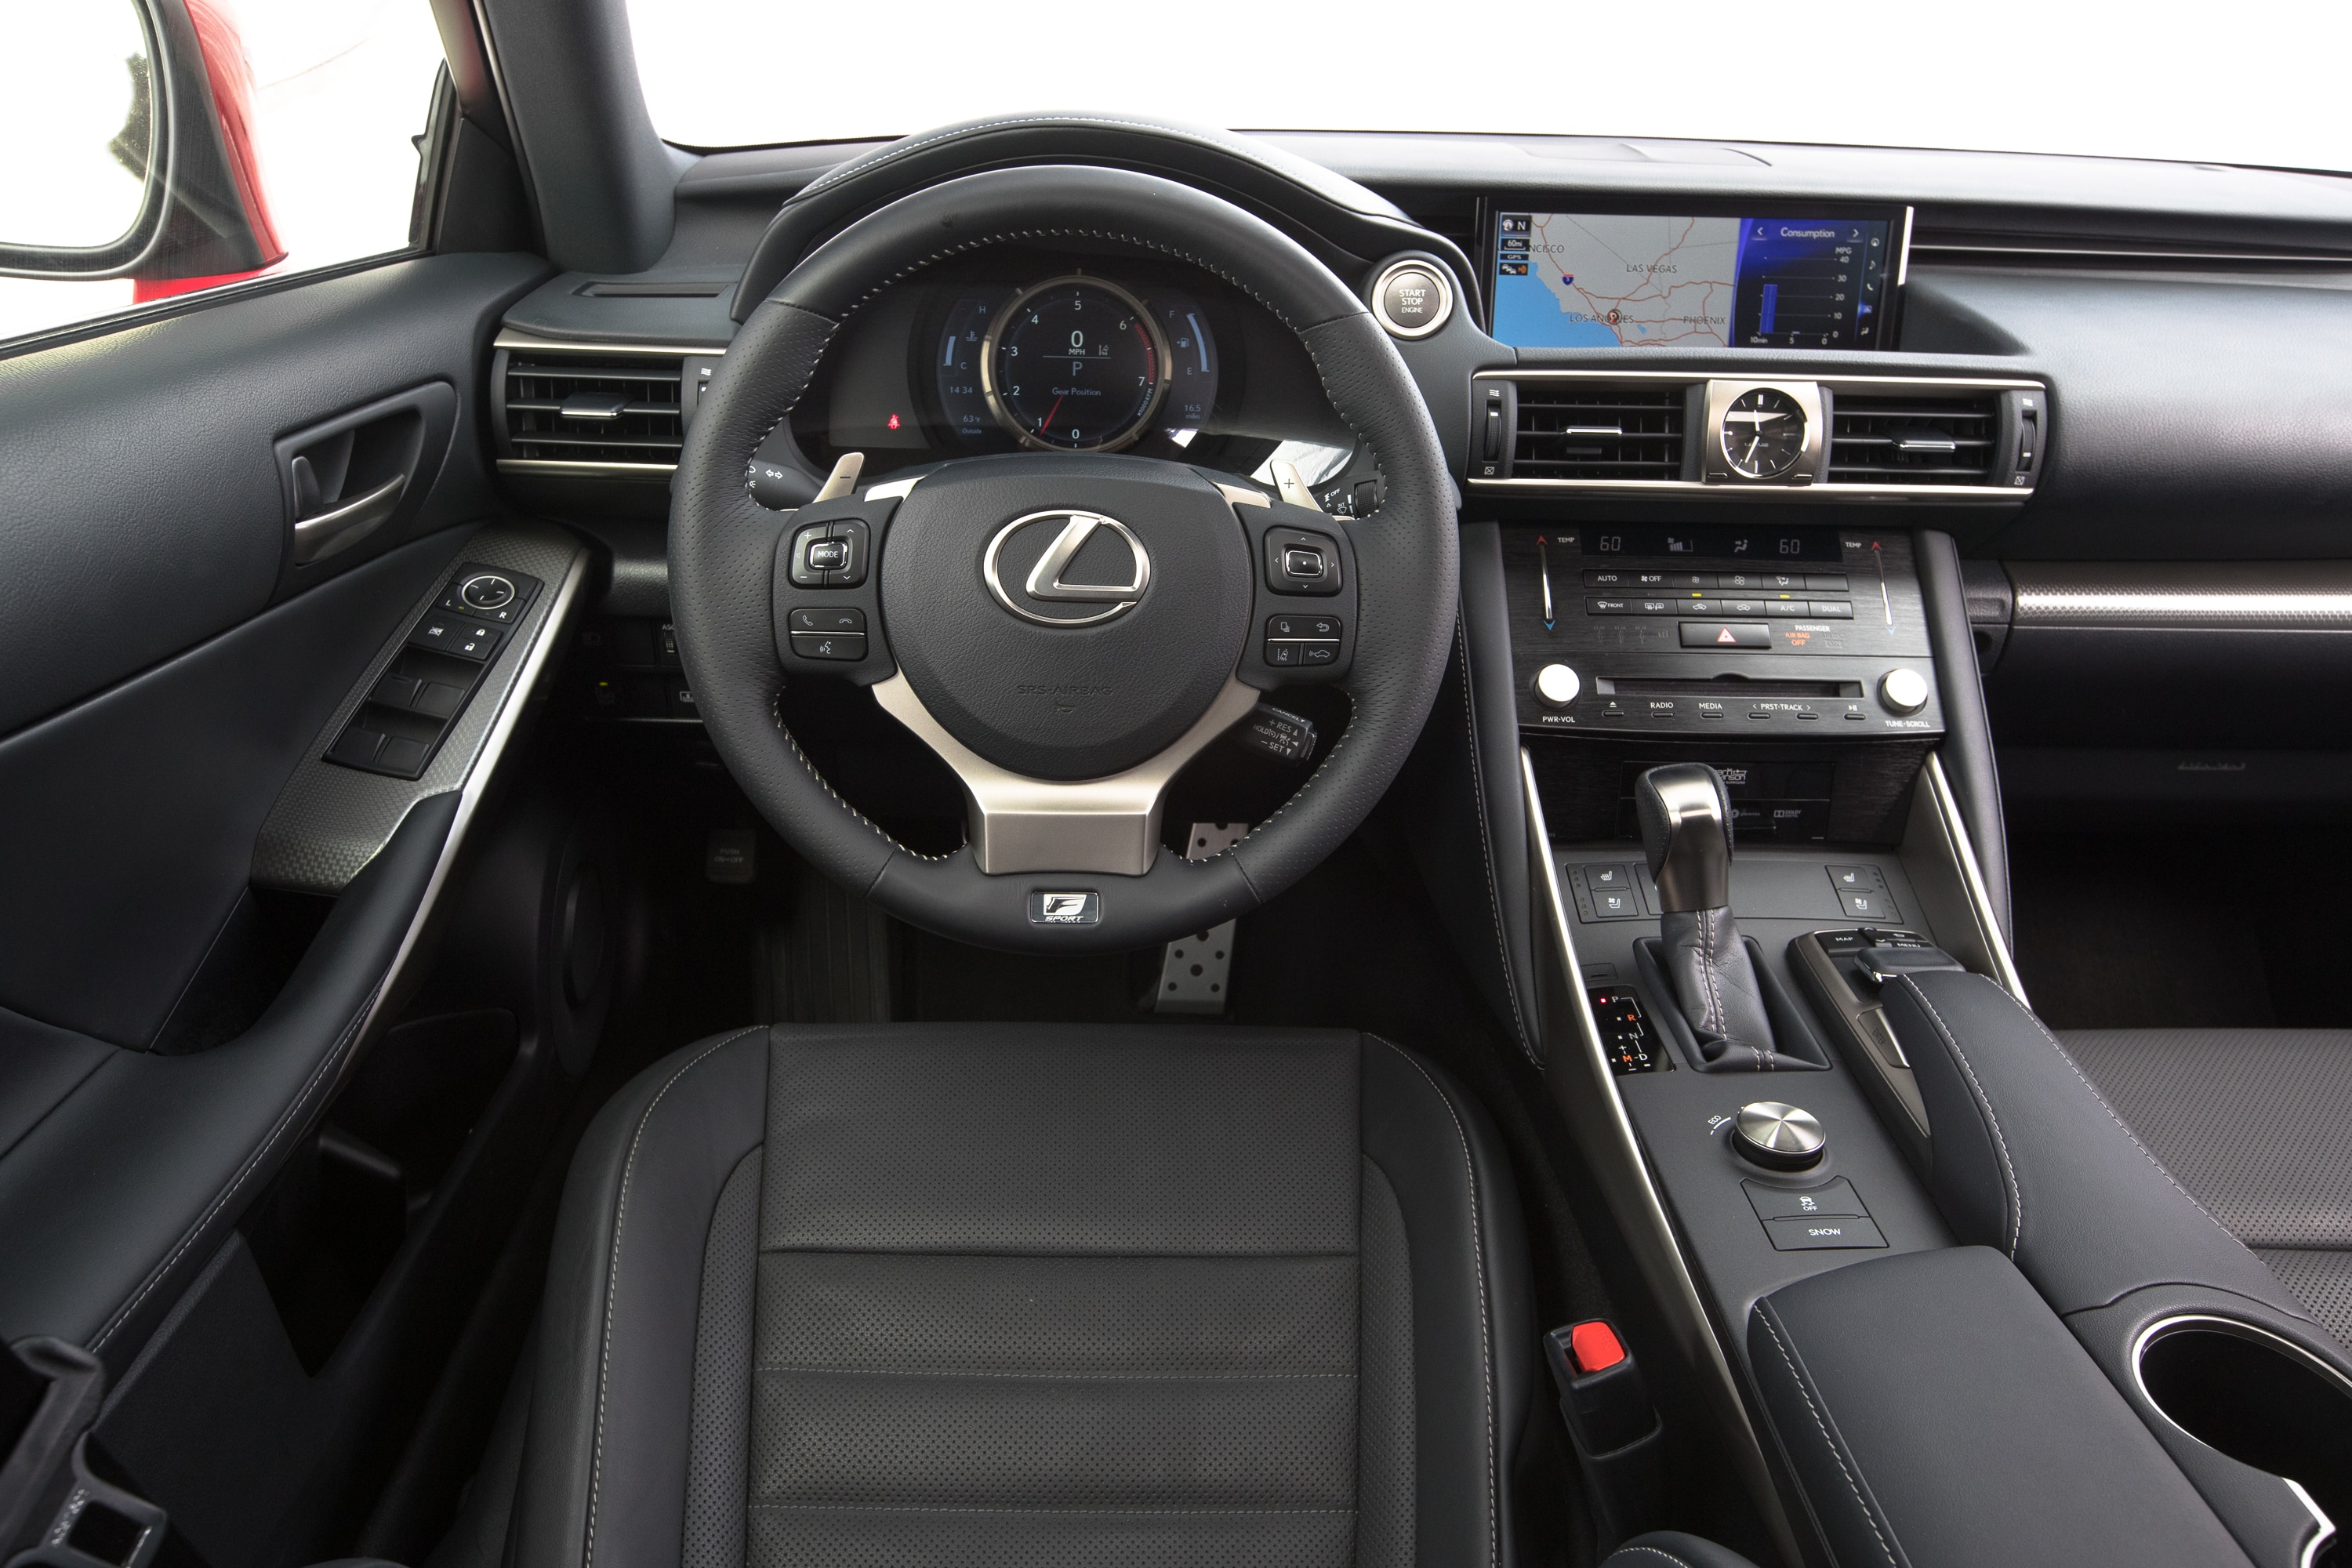 2017 Lexus IS 200t cockpit